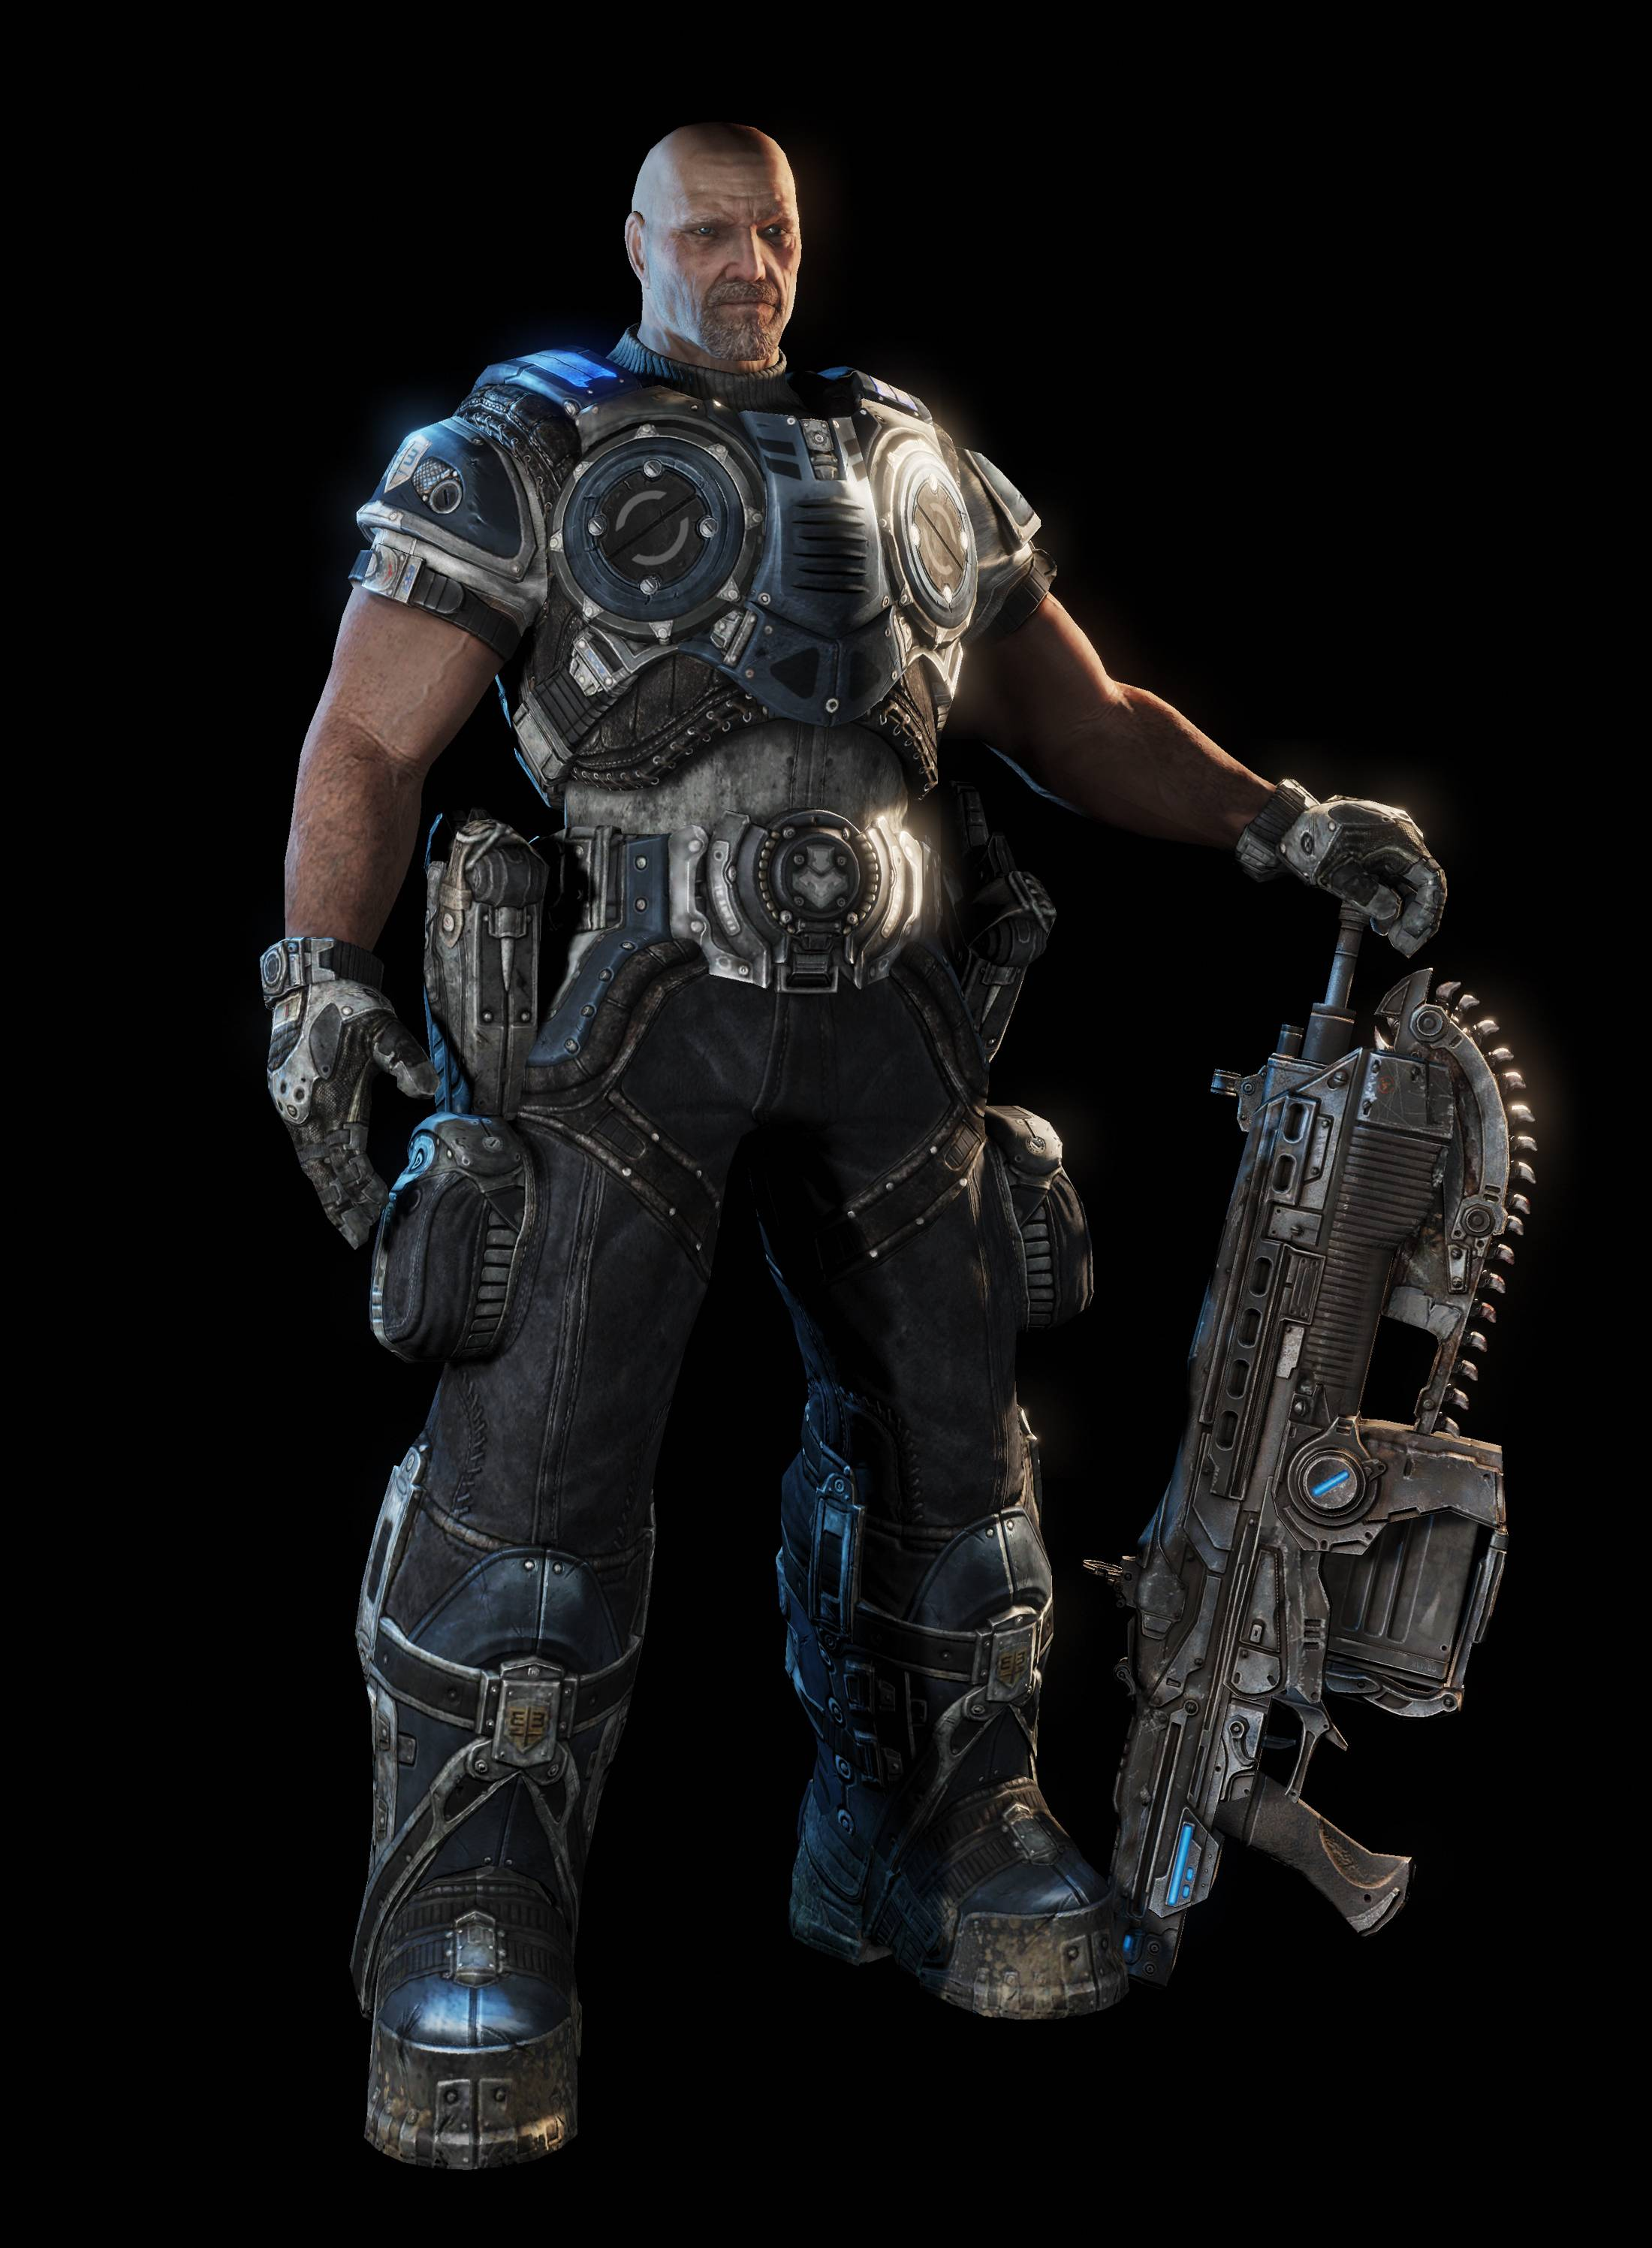 Pre-Order Gears Of War 3 Bonuses At Best Buy, Gamestop